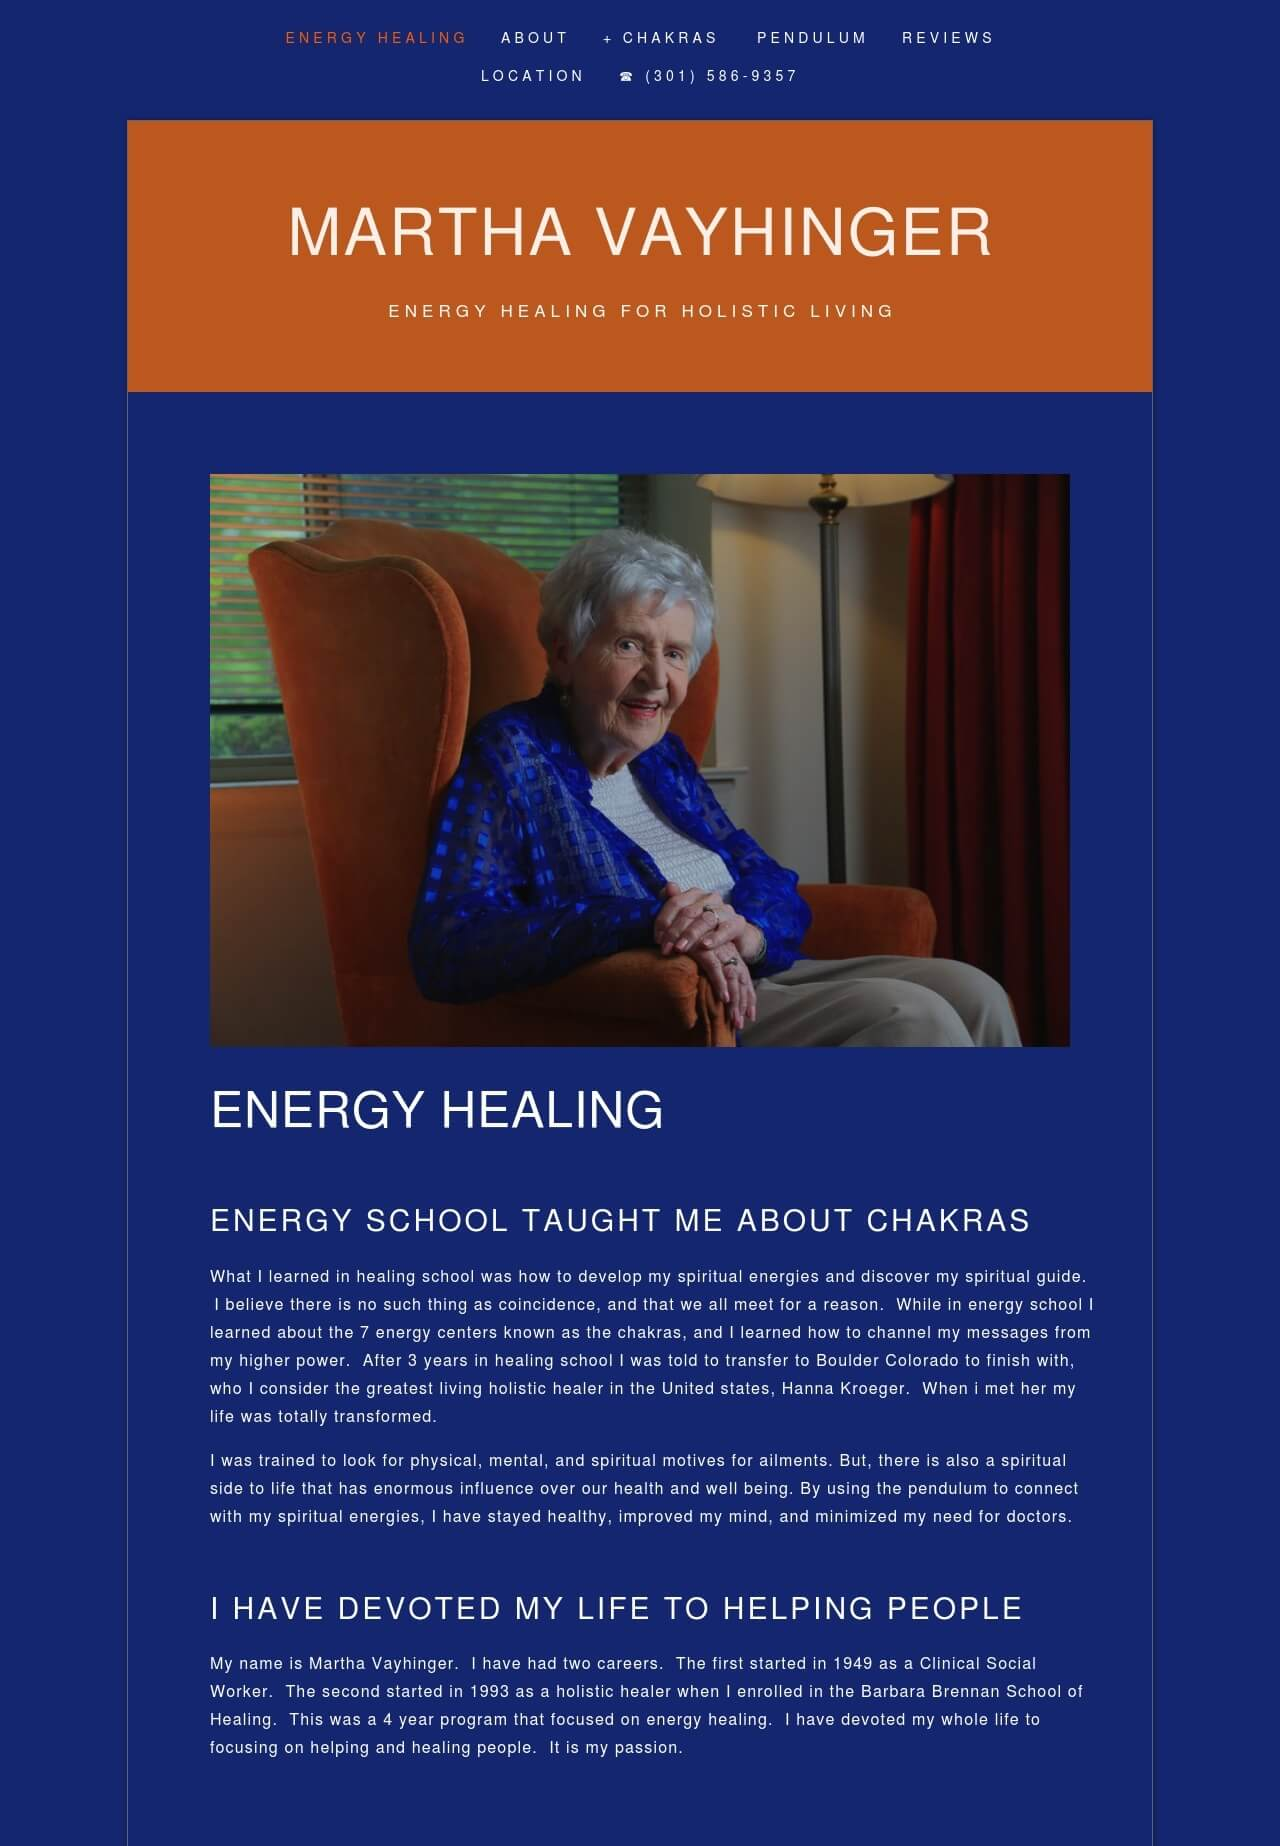 Martha Vayhinger - Martha wants to focus on her energy healing, but she is also a professional therapist. We showed her professional affiliations to give her website more credence.